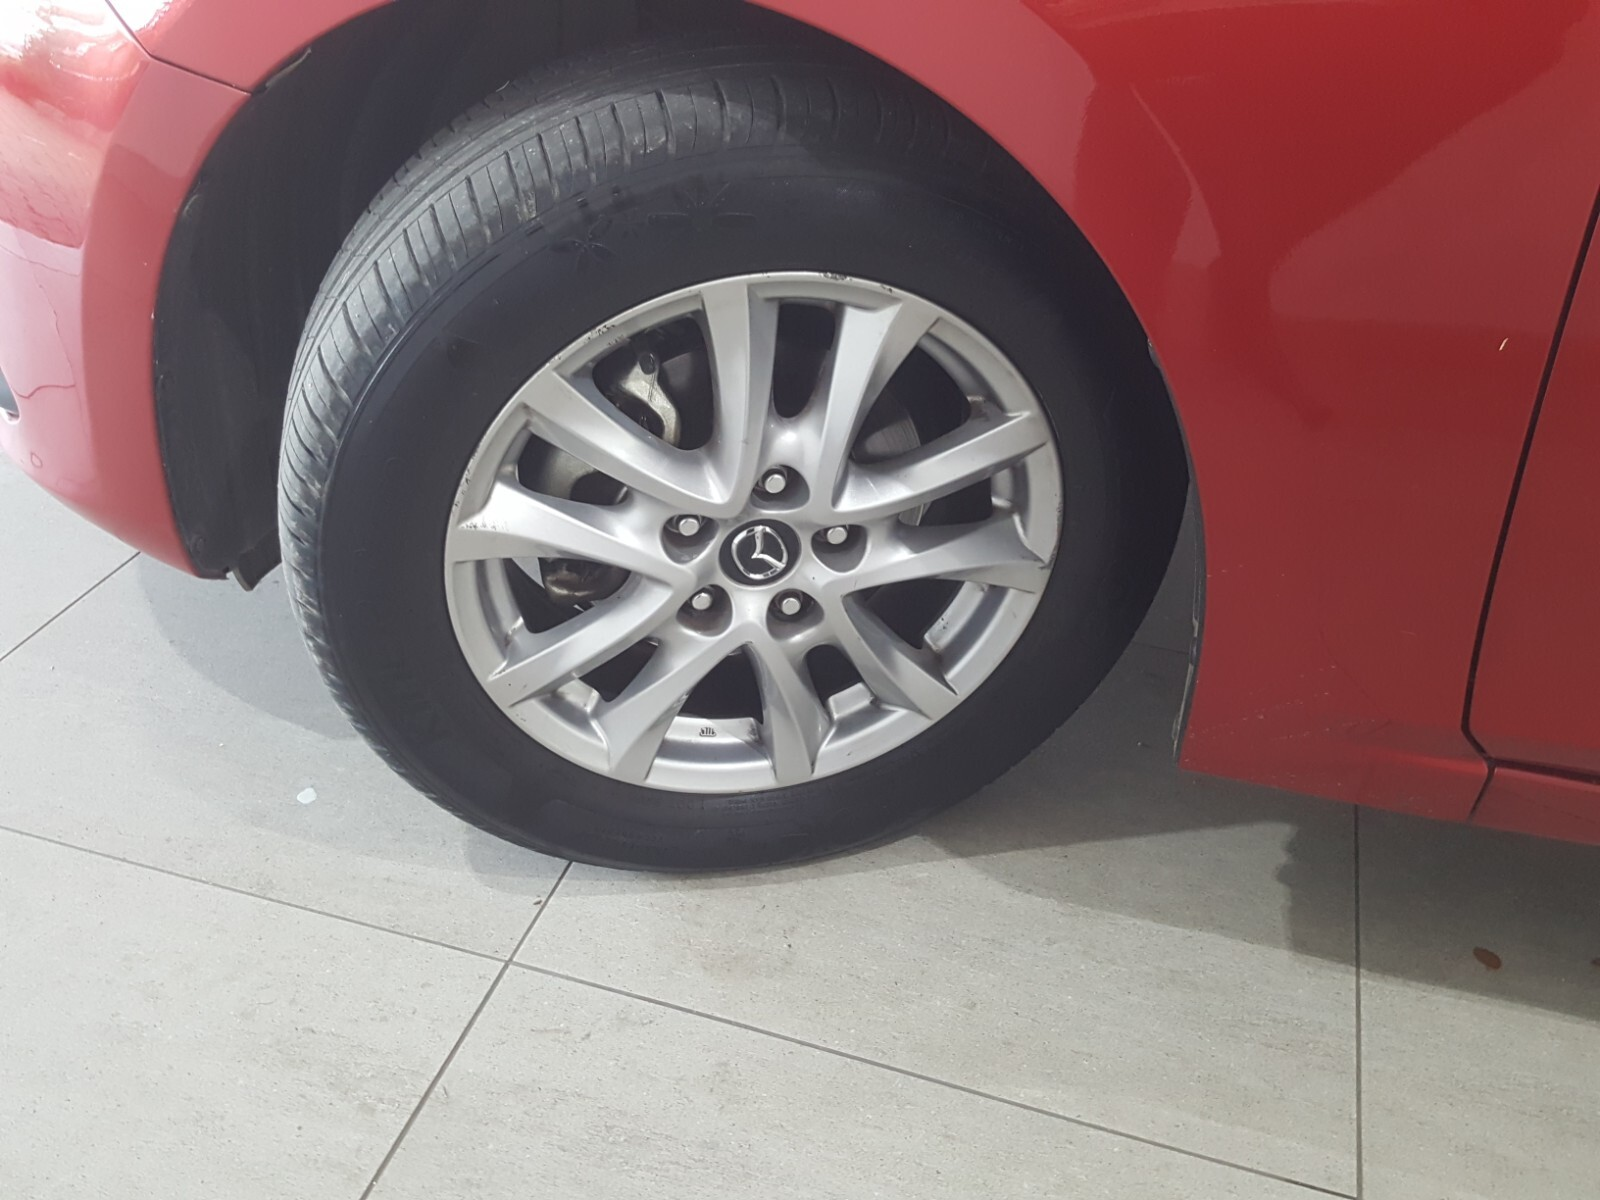 MAZDA 1.6 DYNAMIC 5DR A/T Roodepoort 3327025